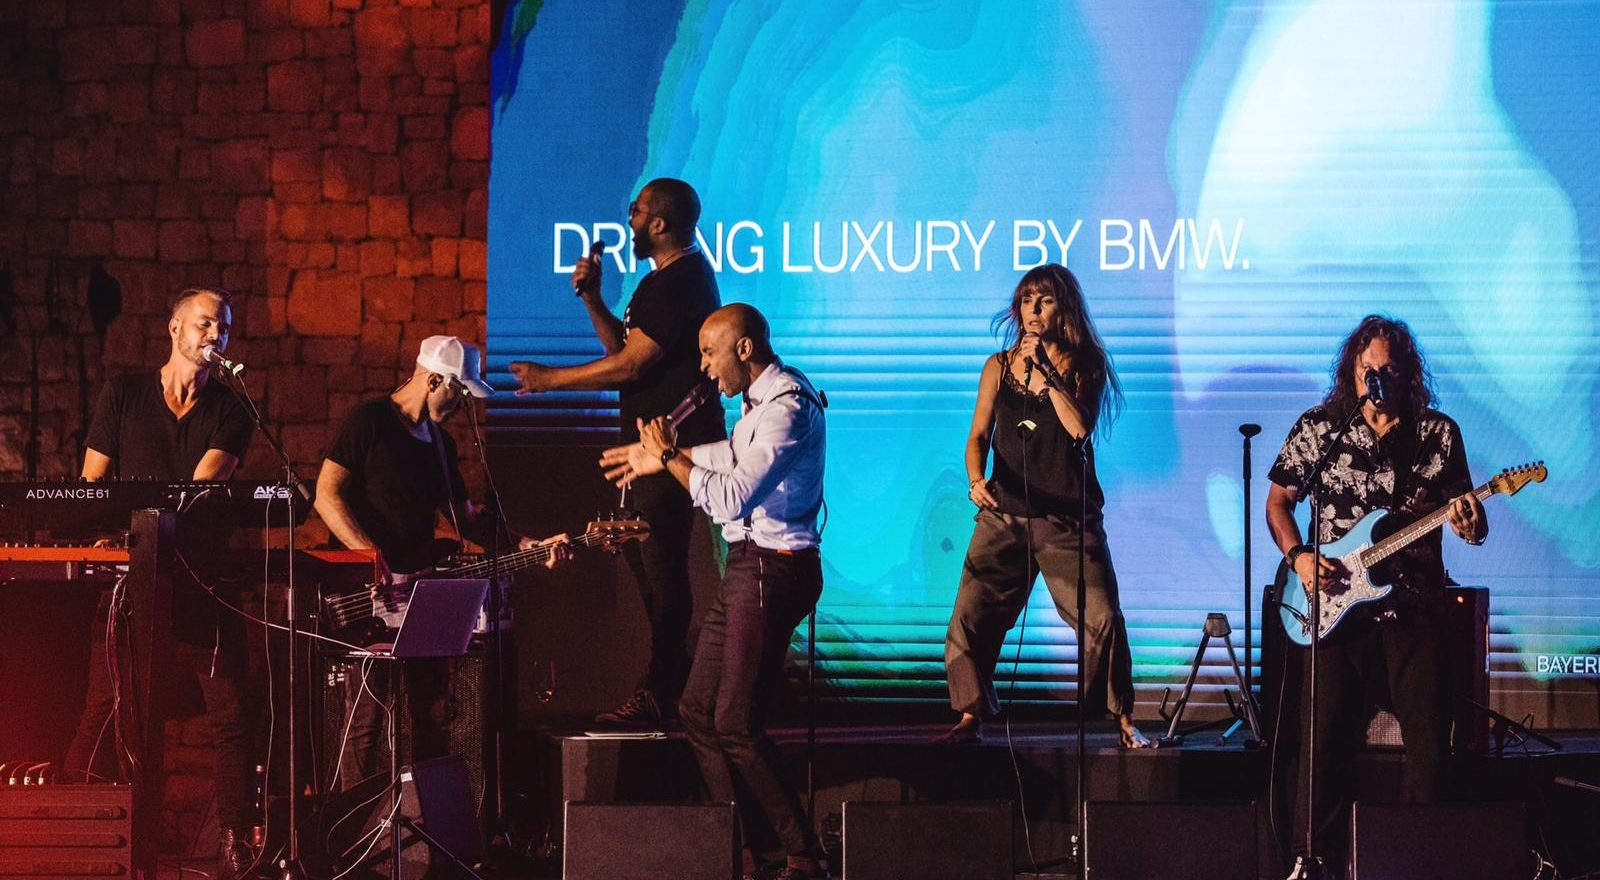 driving_luxury_by_bmw_promoevent_15